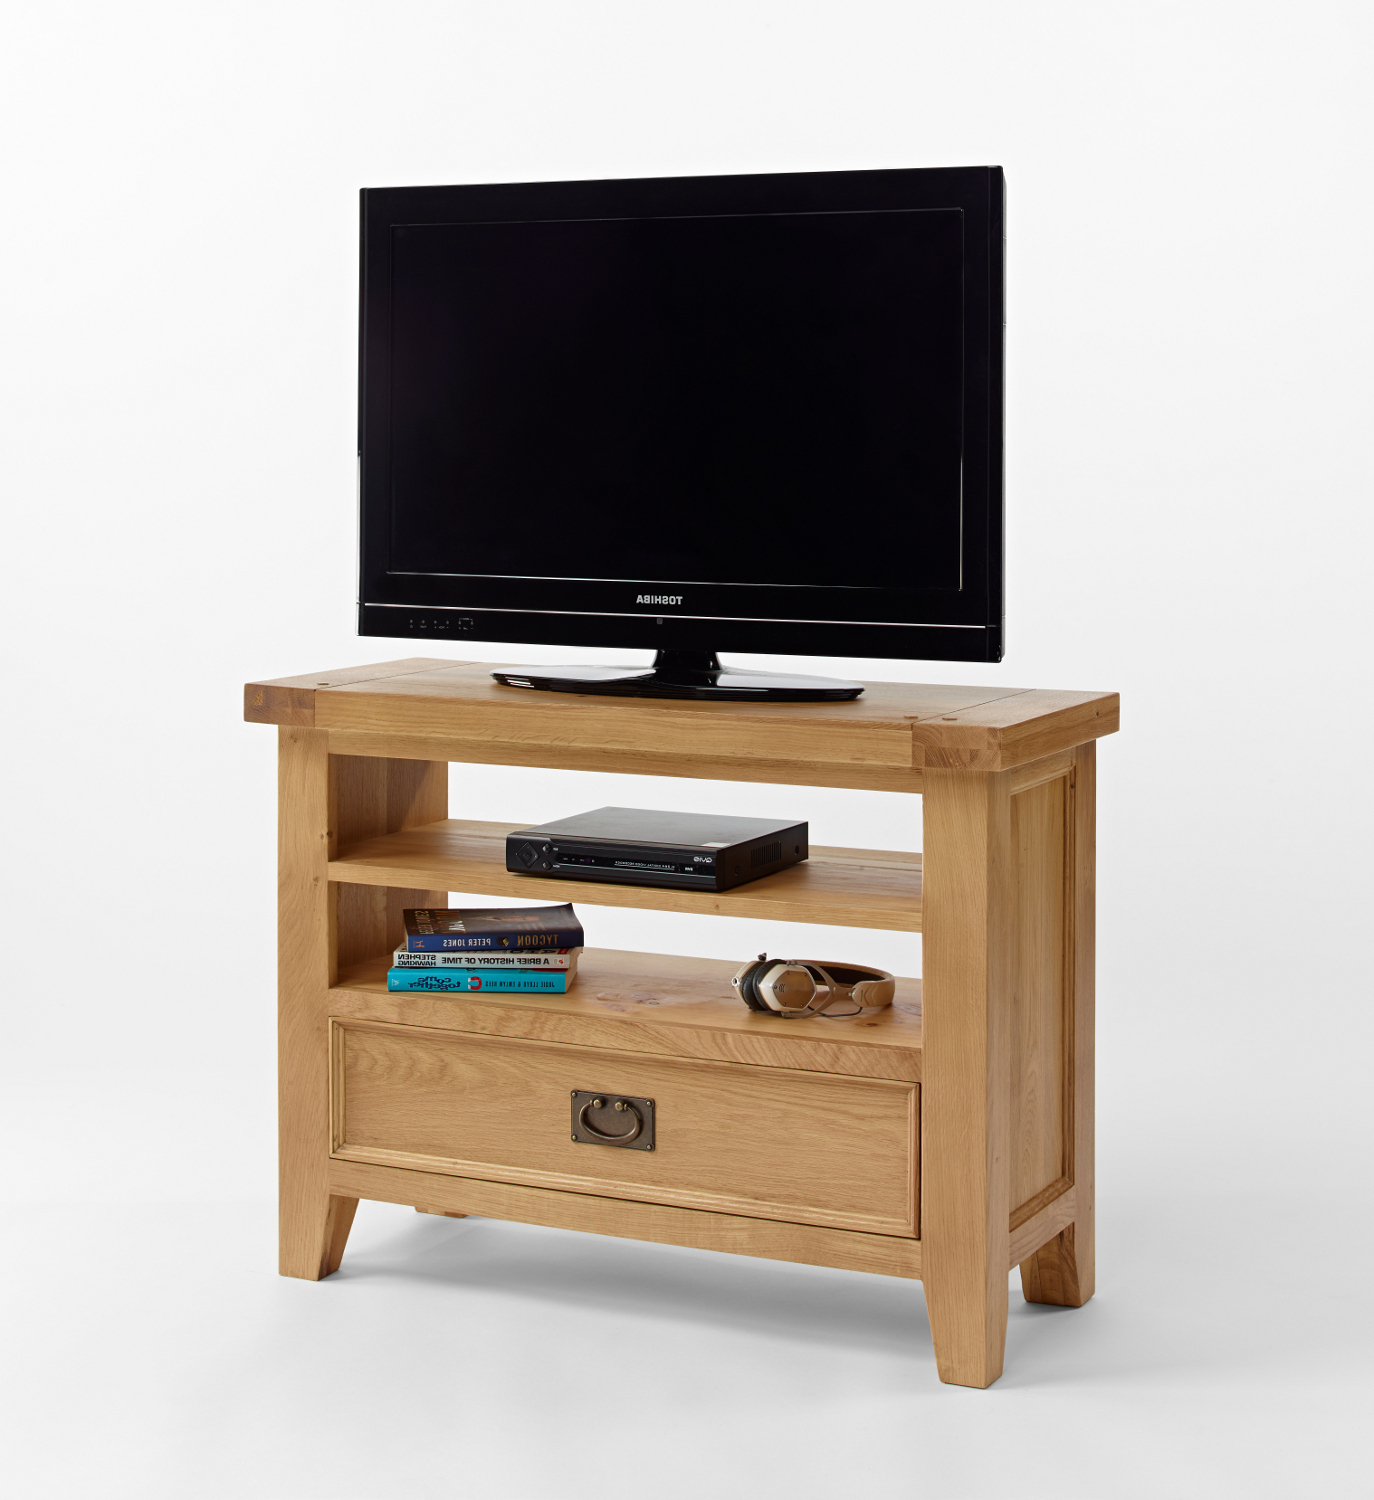 Oak Tv Units Solid Cabinets Corner Furniture Stands Trends Including Intended For Fashionable Oak Widescreen Tv Units (View 14 of 20)